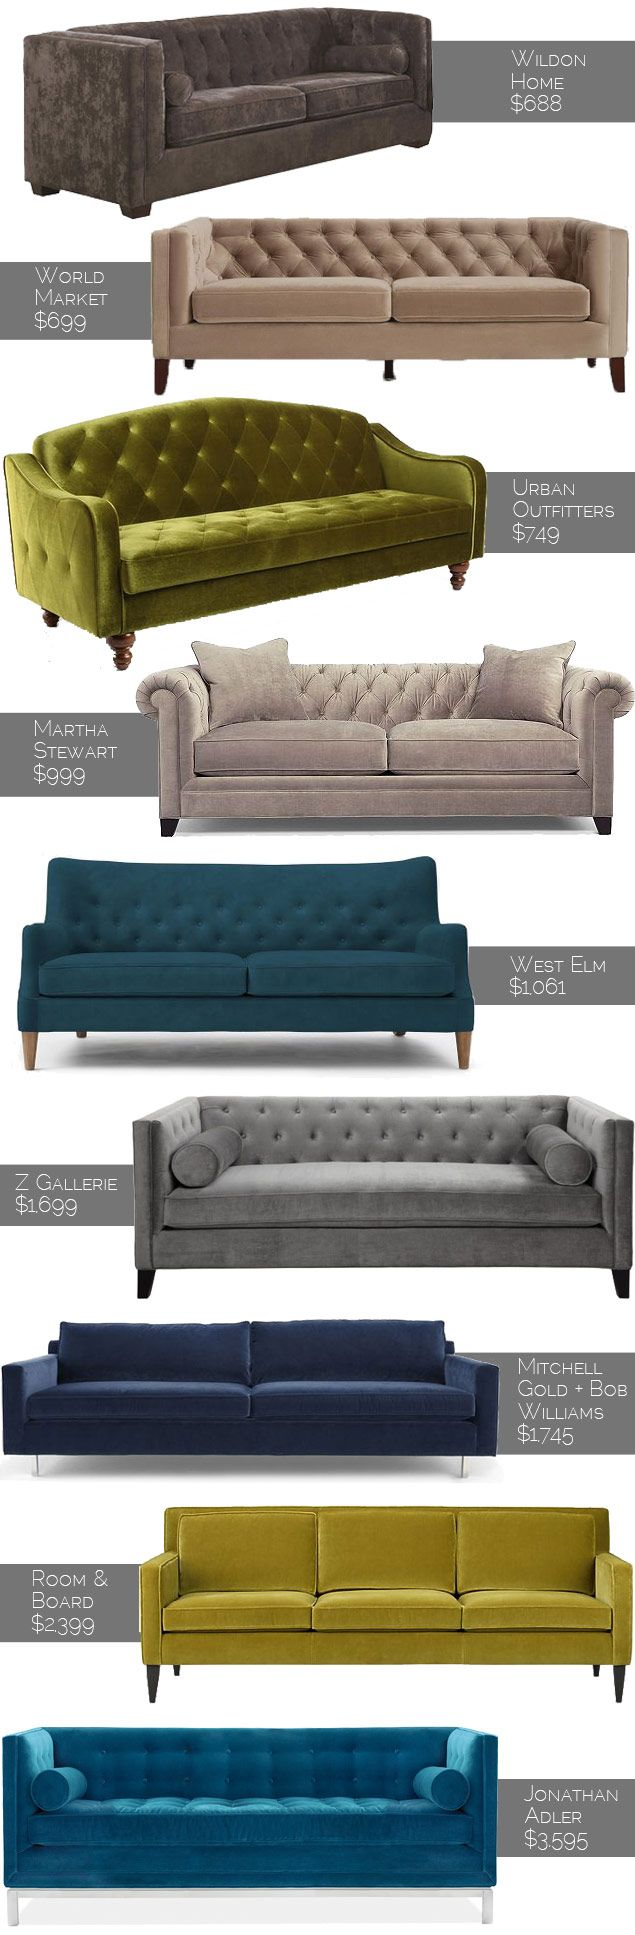 Get the Look: 10 Velvet Sofas for Any Budget (Photos)   Home Design & Shopping   Washingtonian